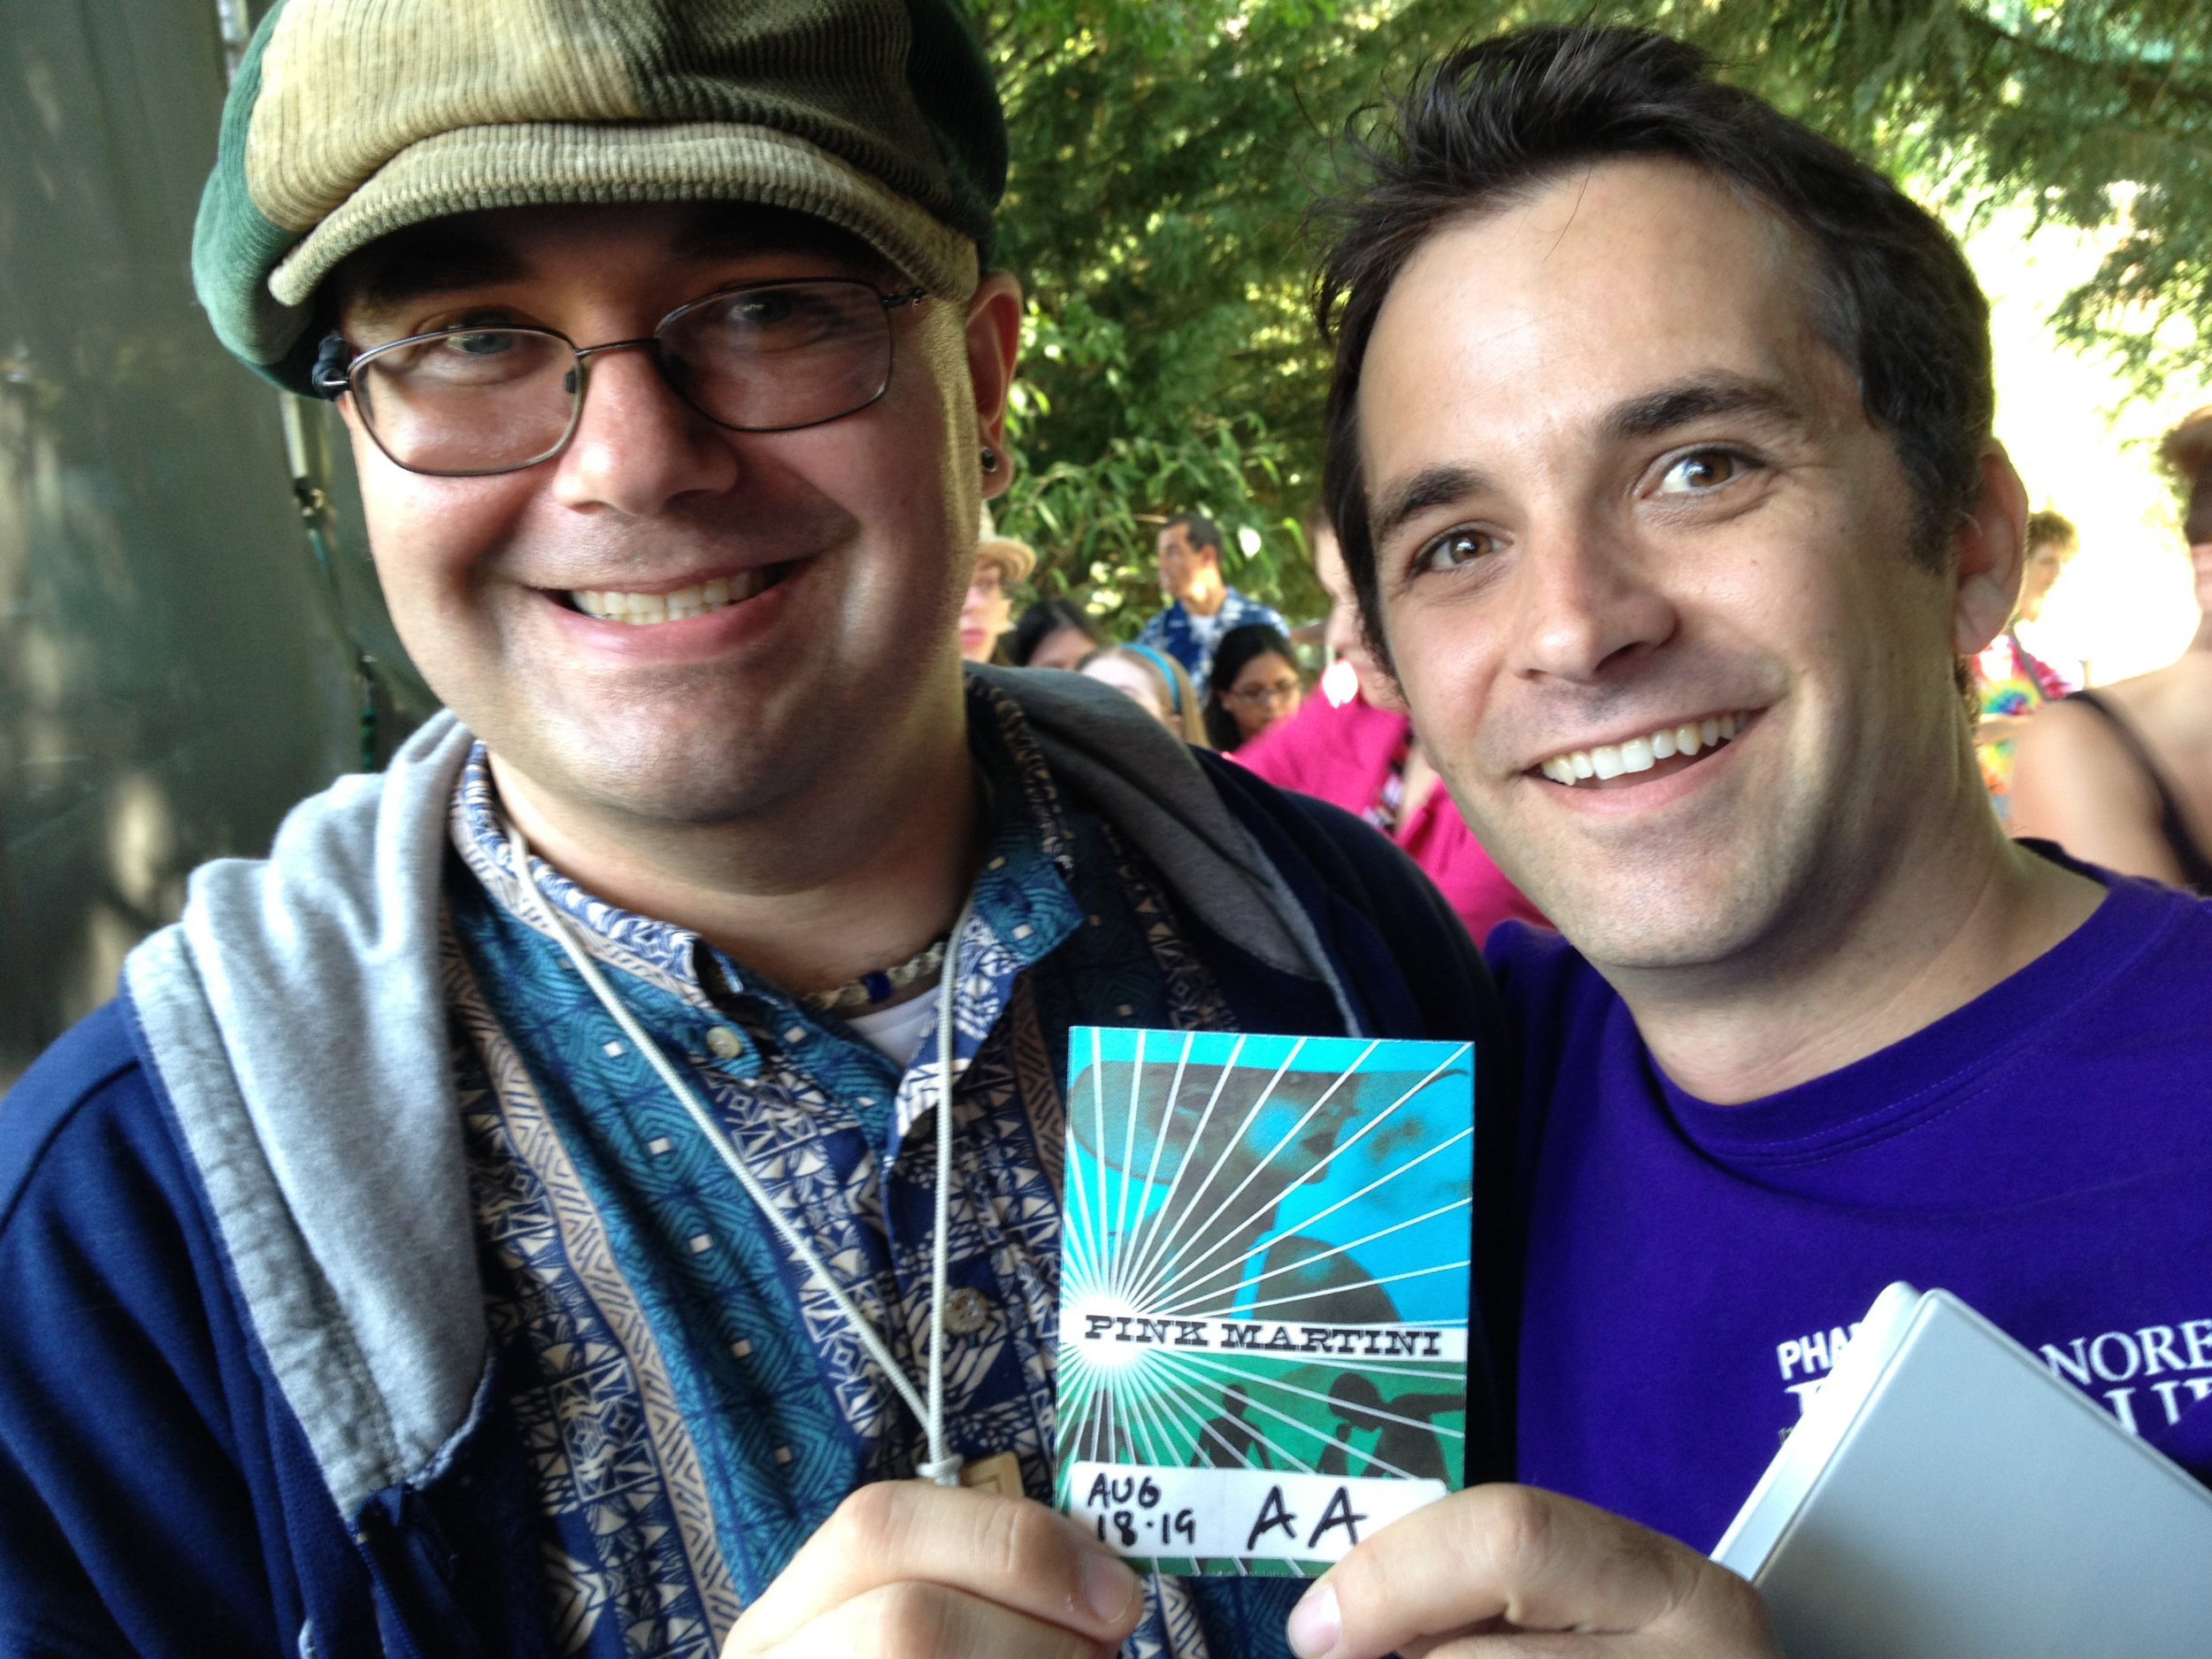 PHAME student Estin and Director of Arts and Education Matthew Gailey hold up a Pink Martini ticket